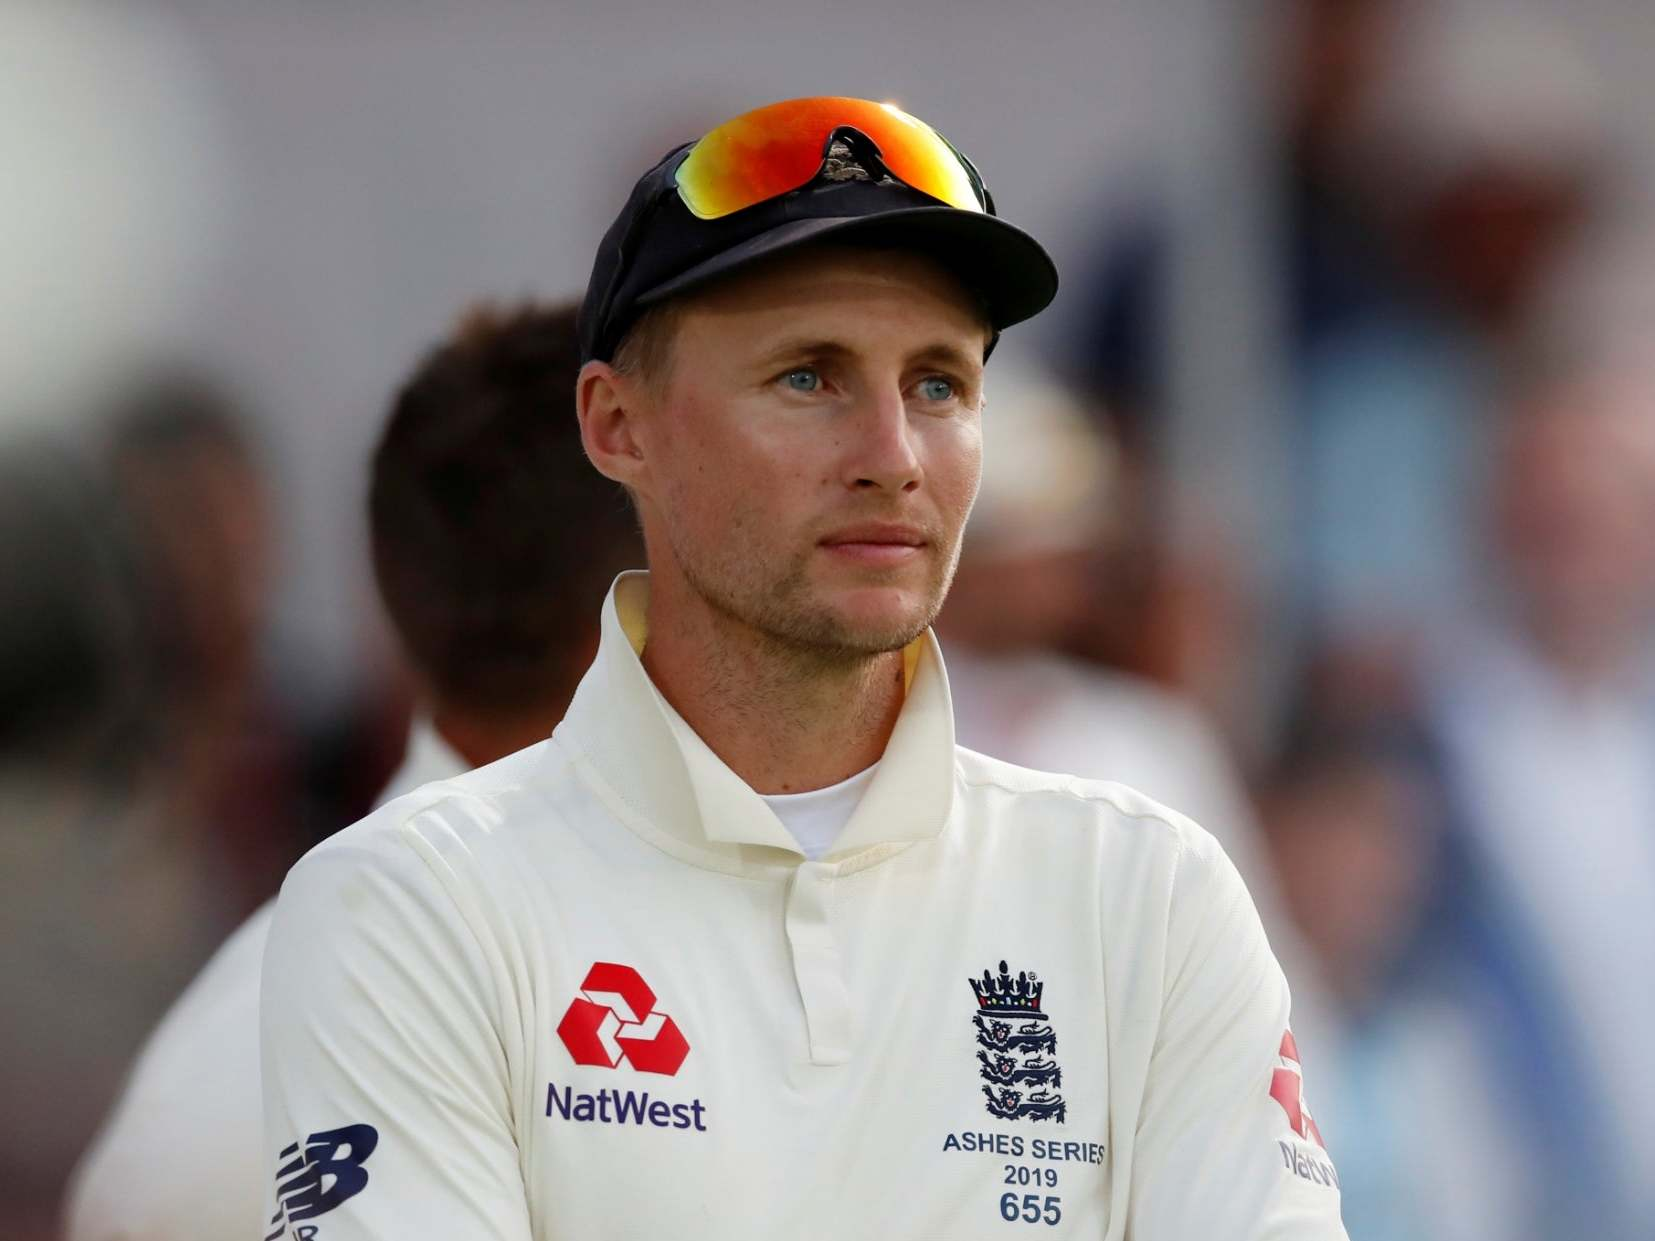 Joe Root: England captain going back to basics to rediscover best form with visit to boyhood club